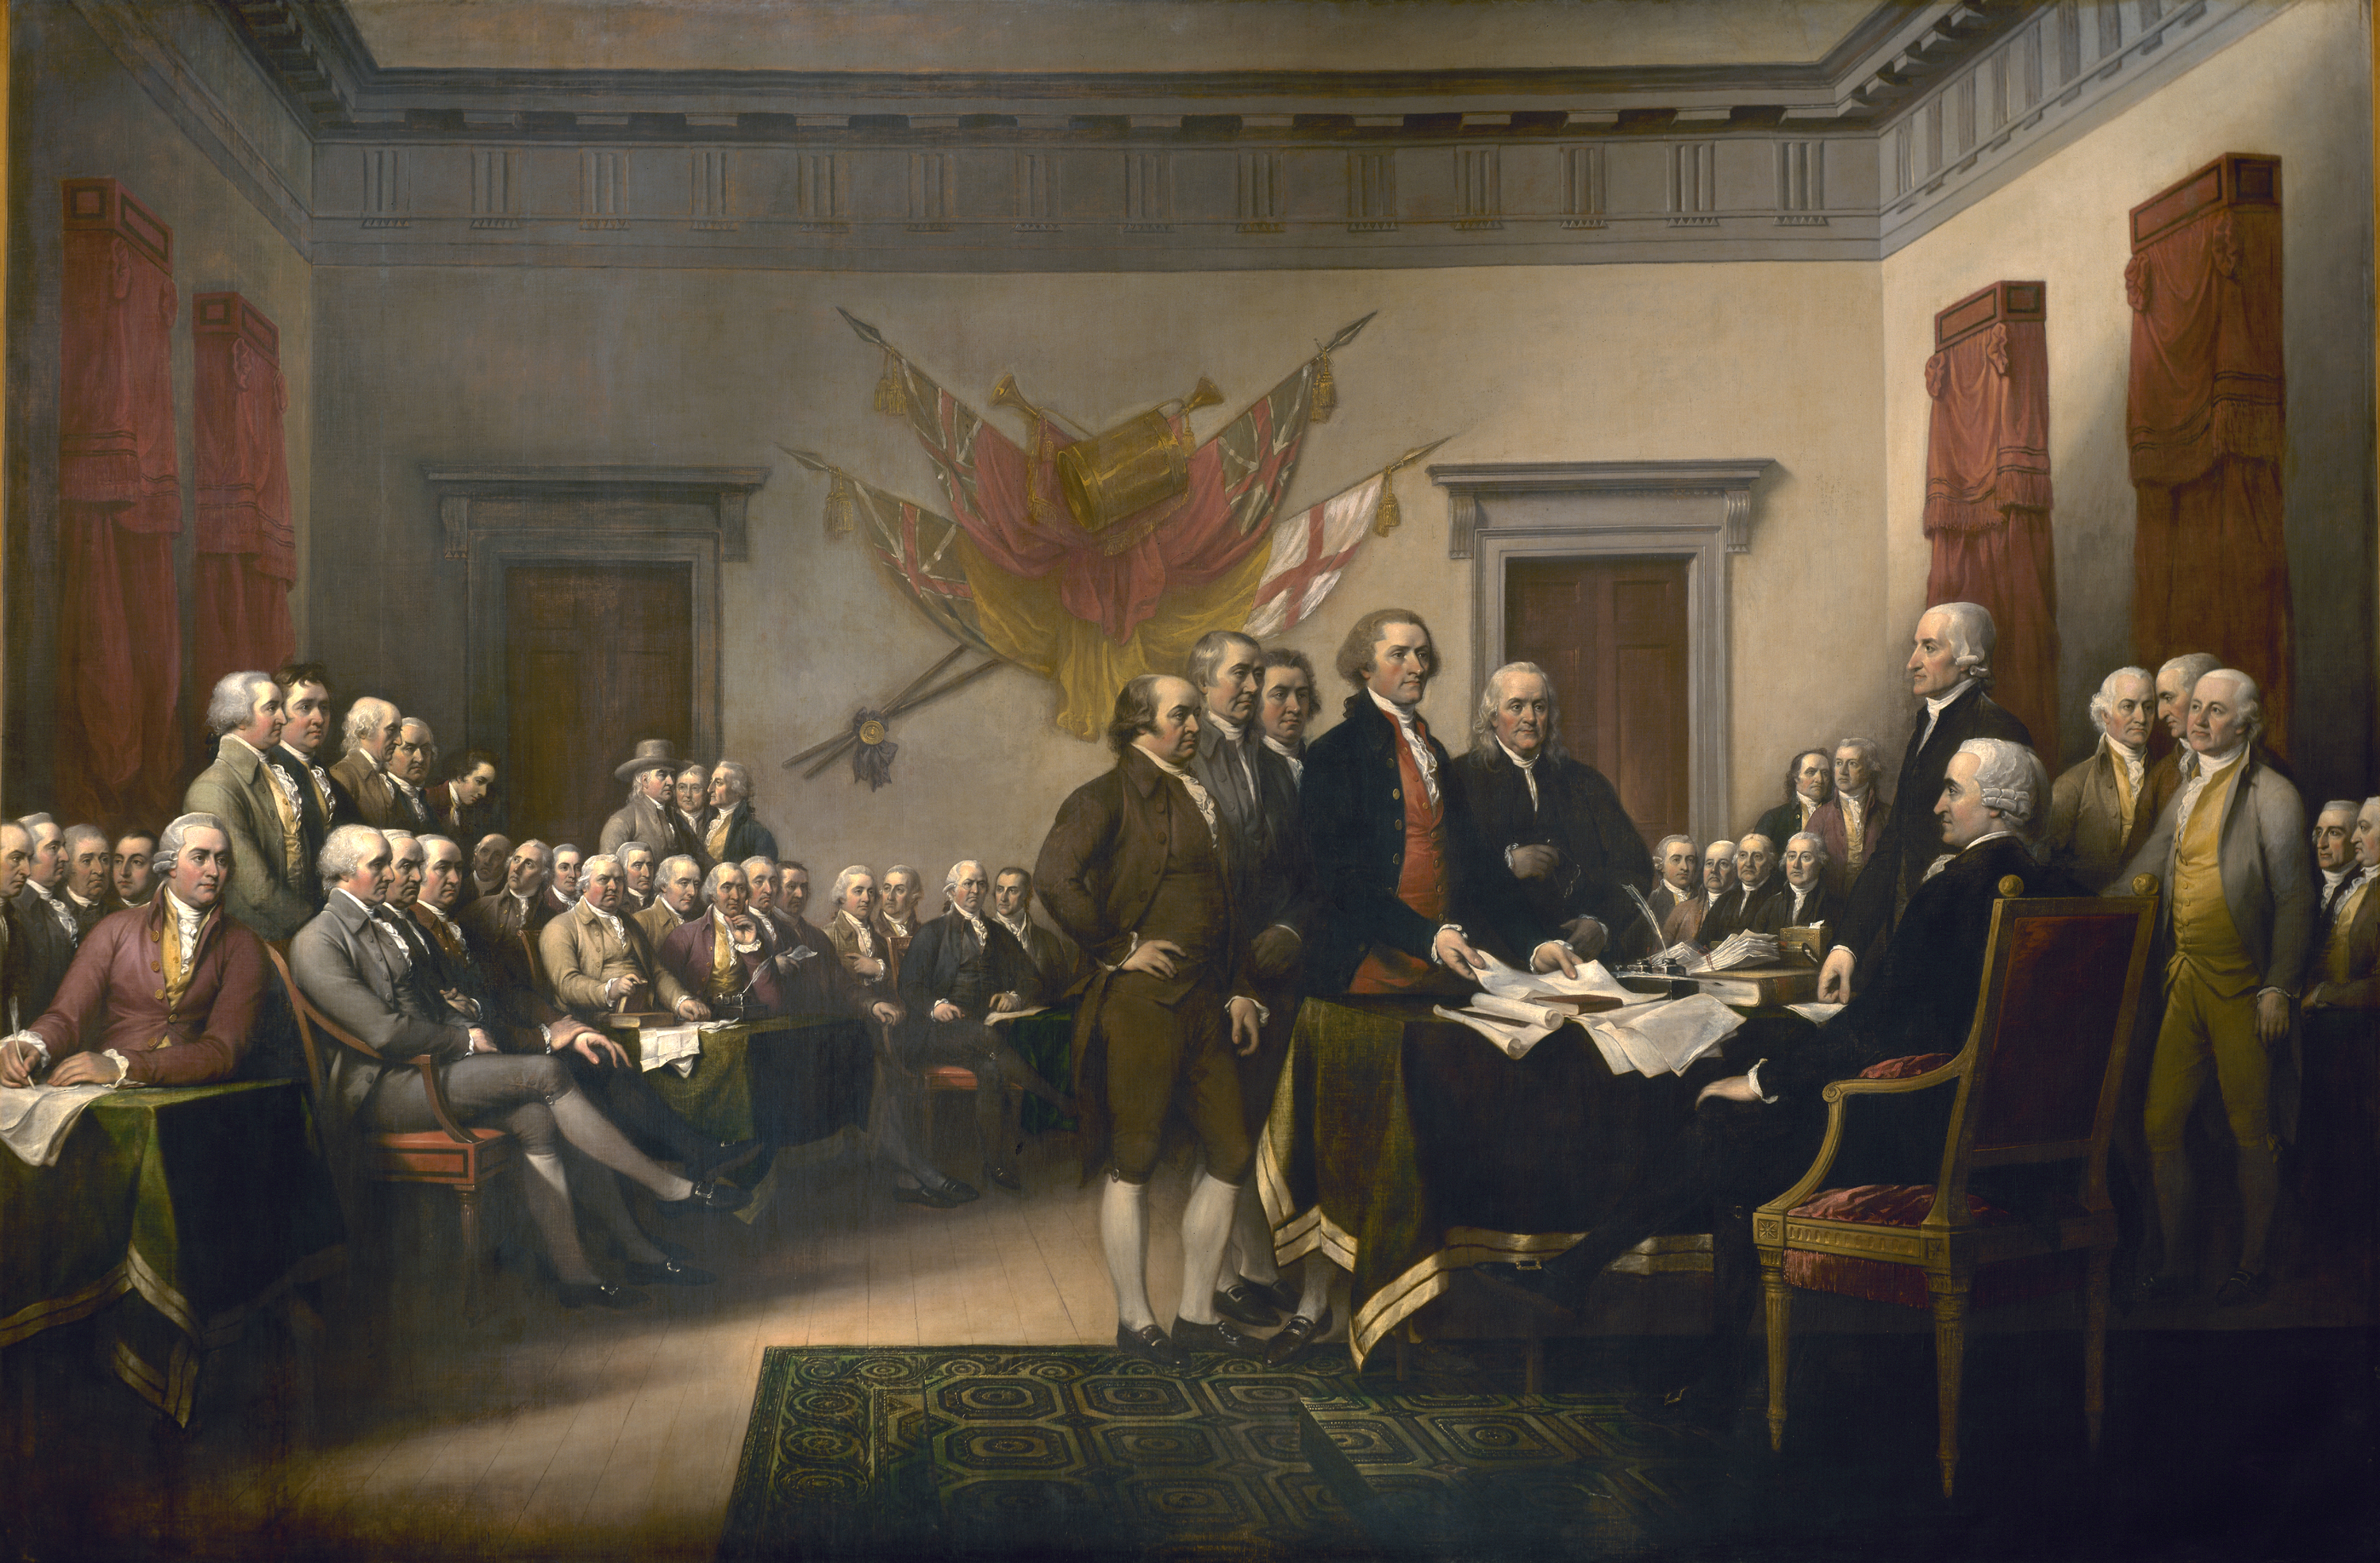 The Declaration of Independence by John Trumbull, 1817